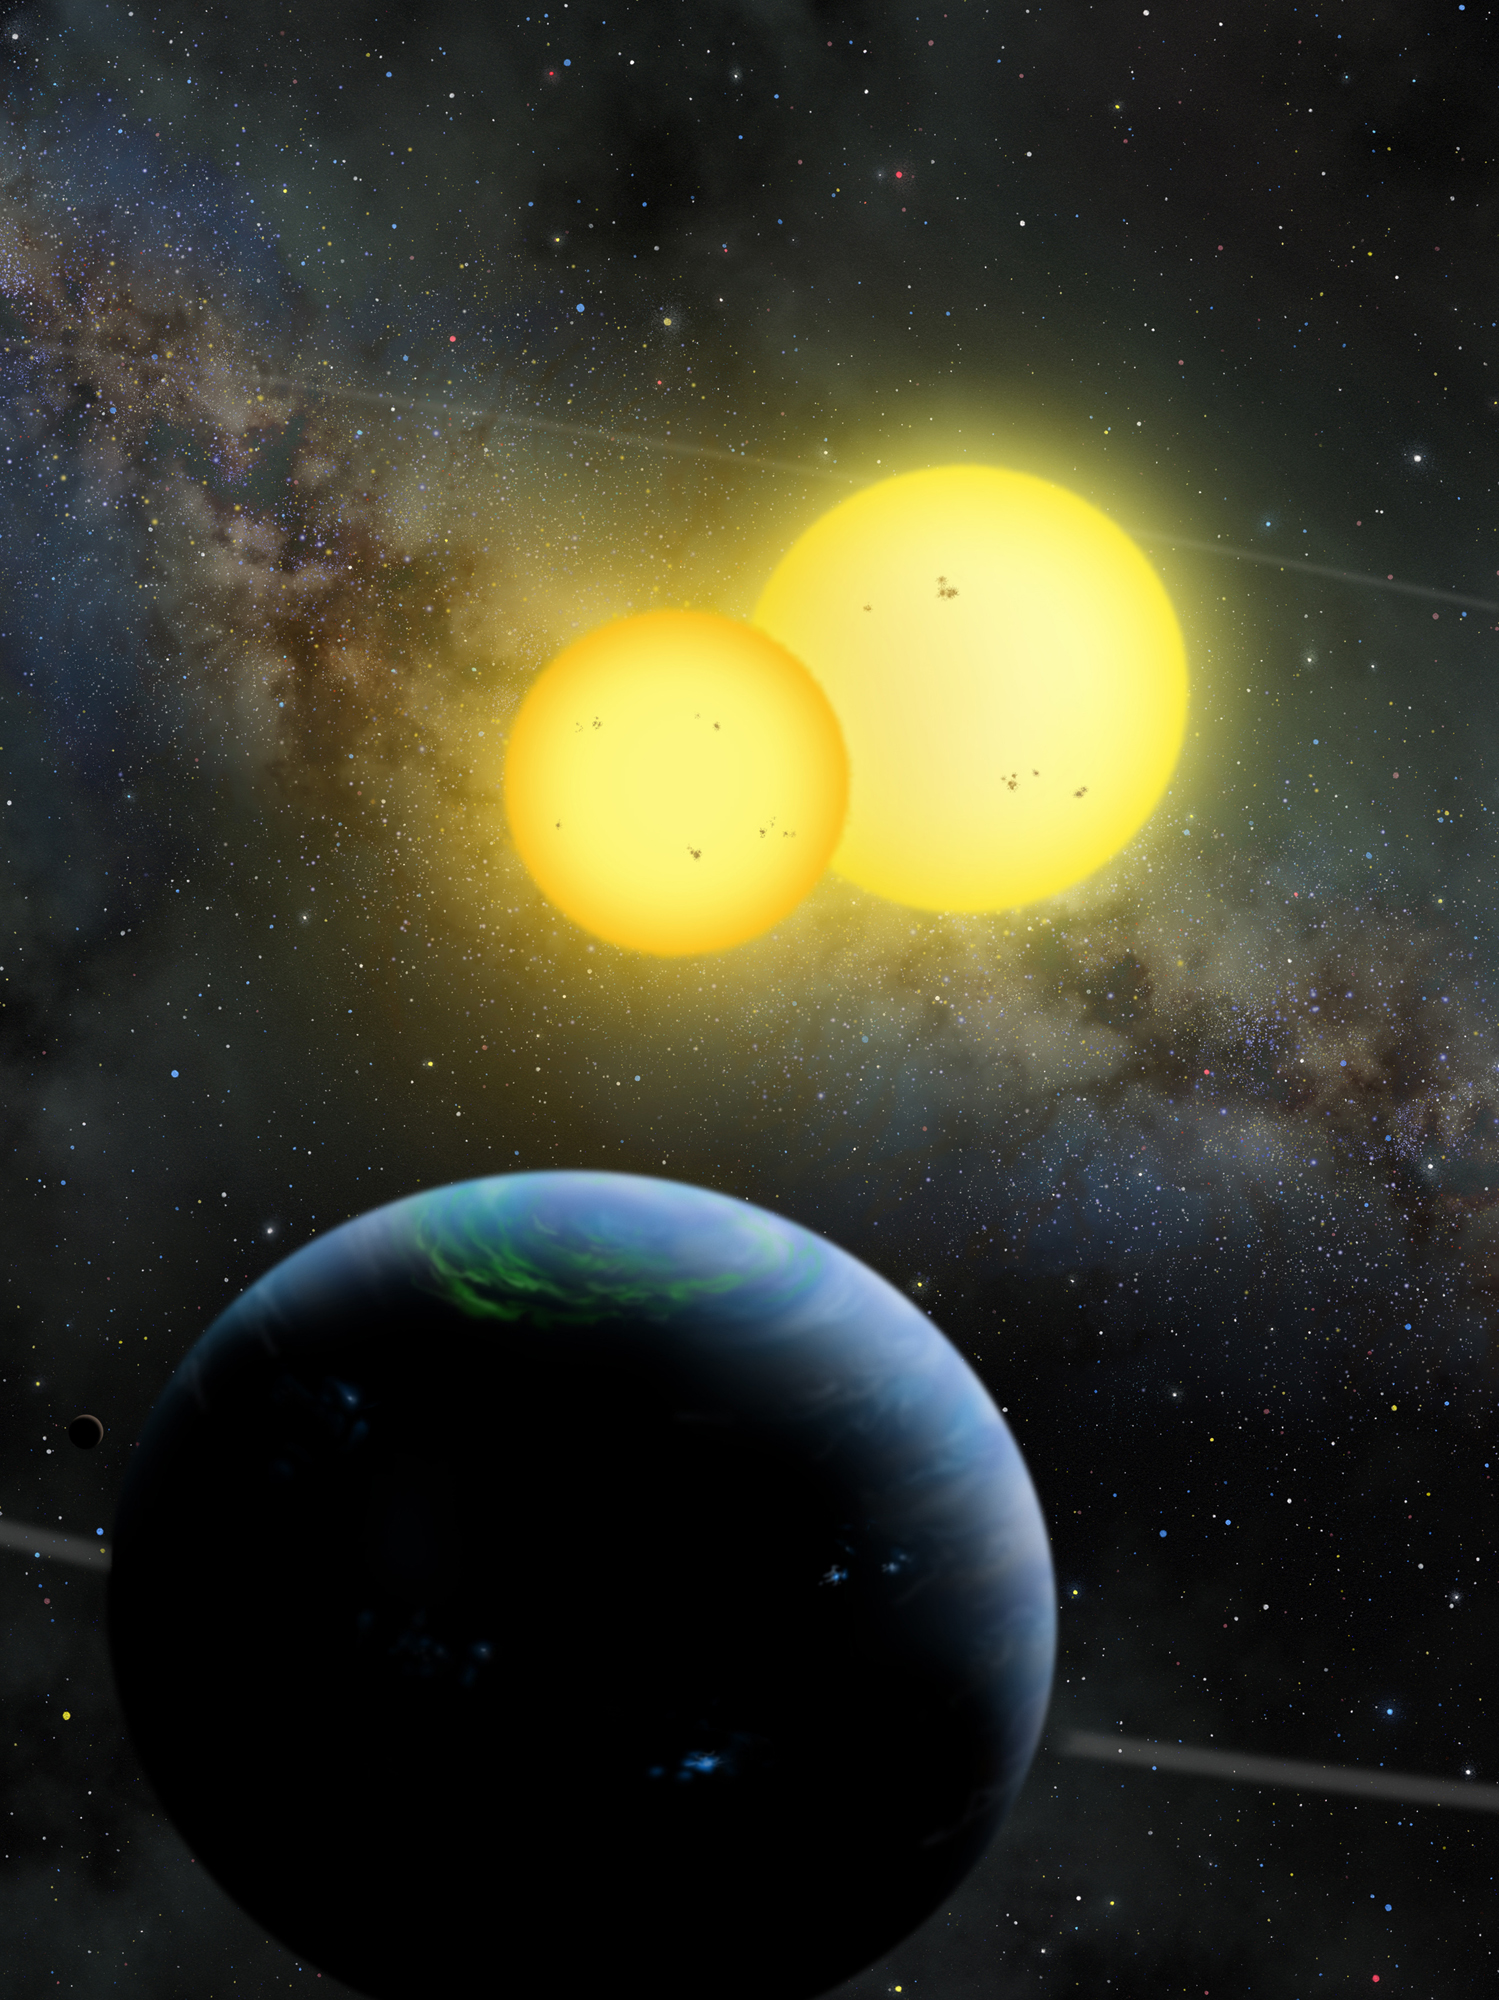 Real-Life 'Tatooine': New 'Star Wars'-Like Planets with 2 Suns Found